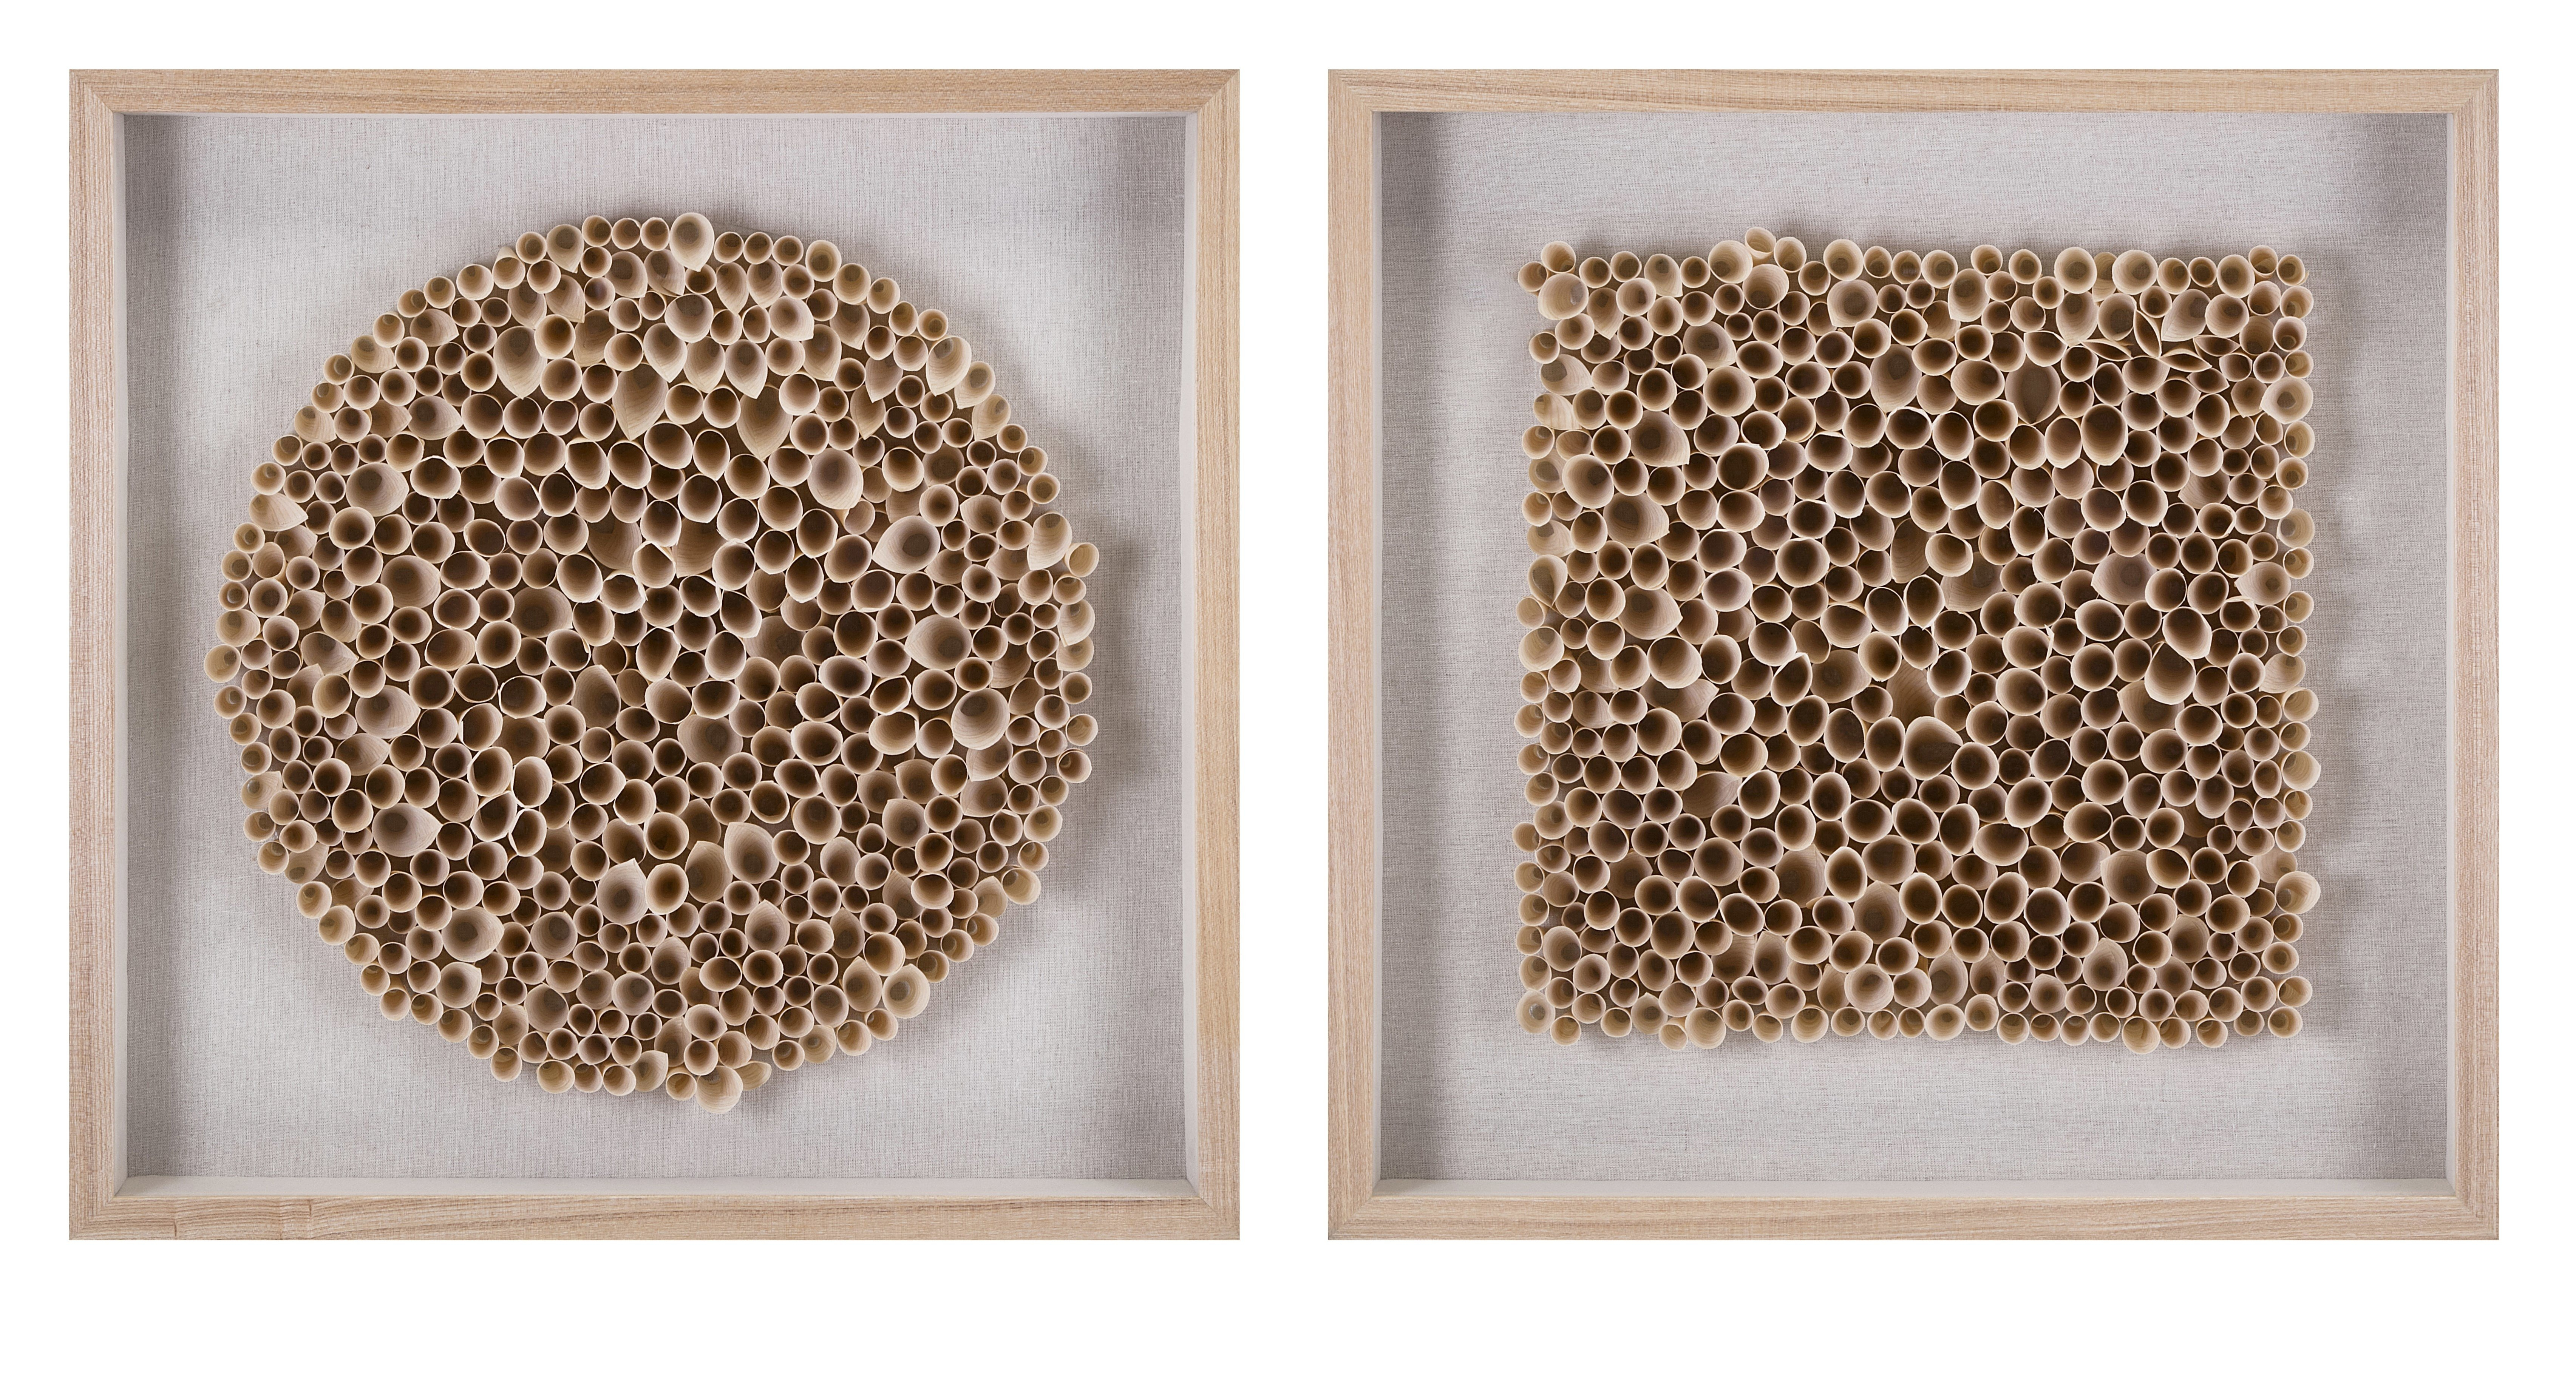 2 Piece Wall Decor Set | Wayfair intended for 2 Piece Trigg Wall Decor Sets (Set of 2) (Image 3 of 30)